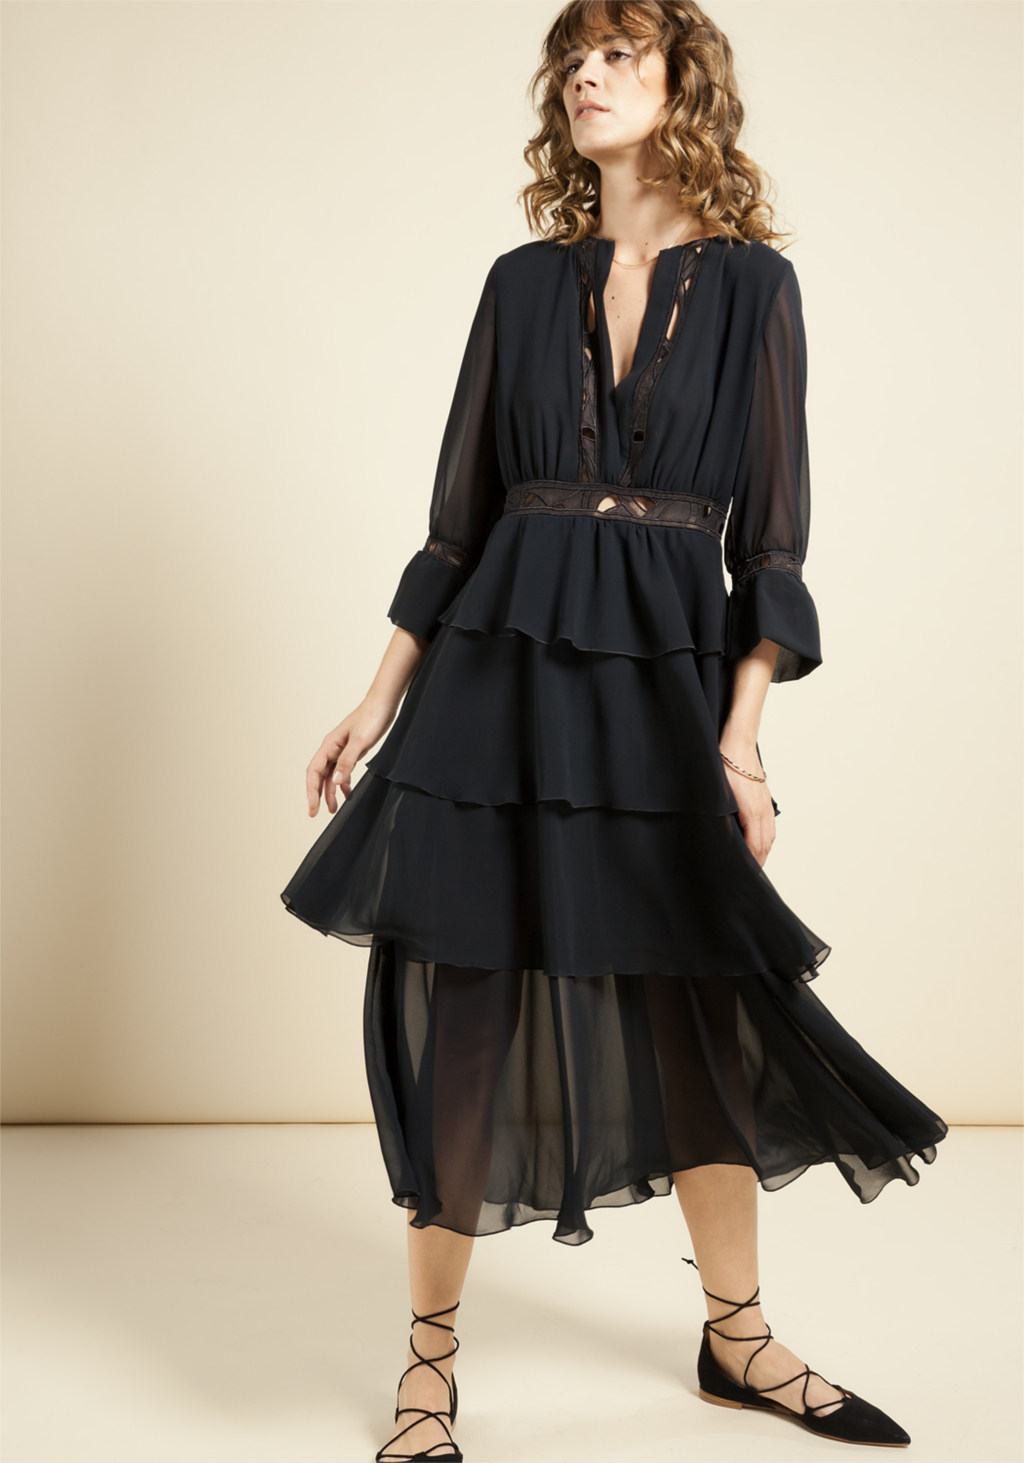 Black chiffon dress with insert in unic embroidery organza